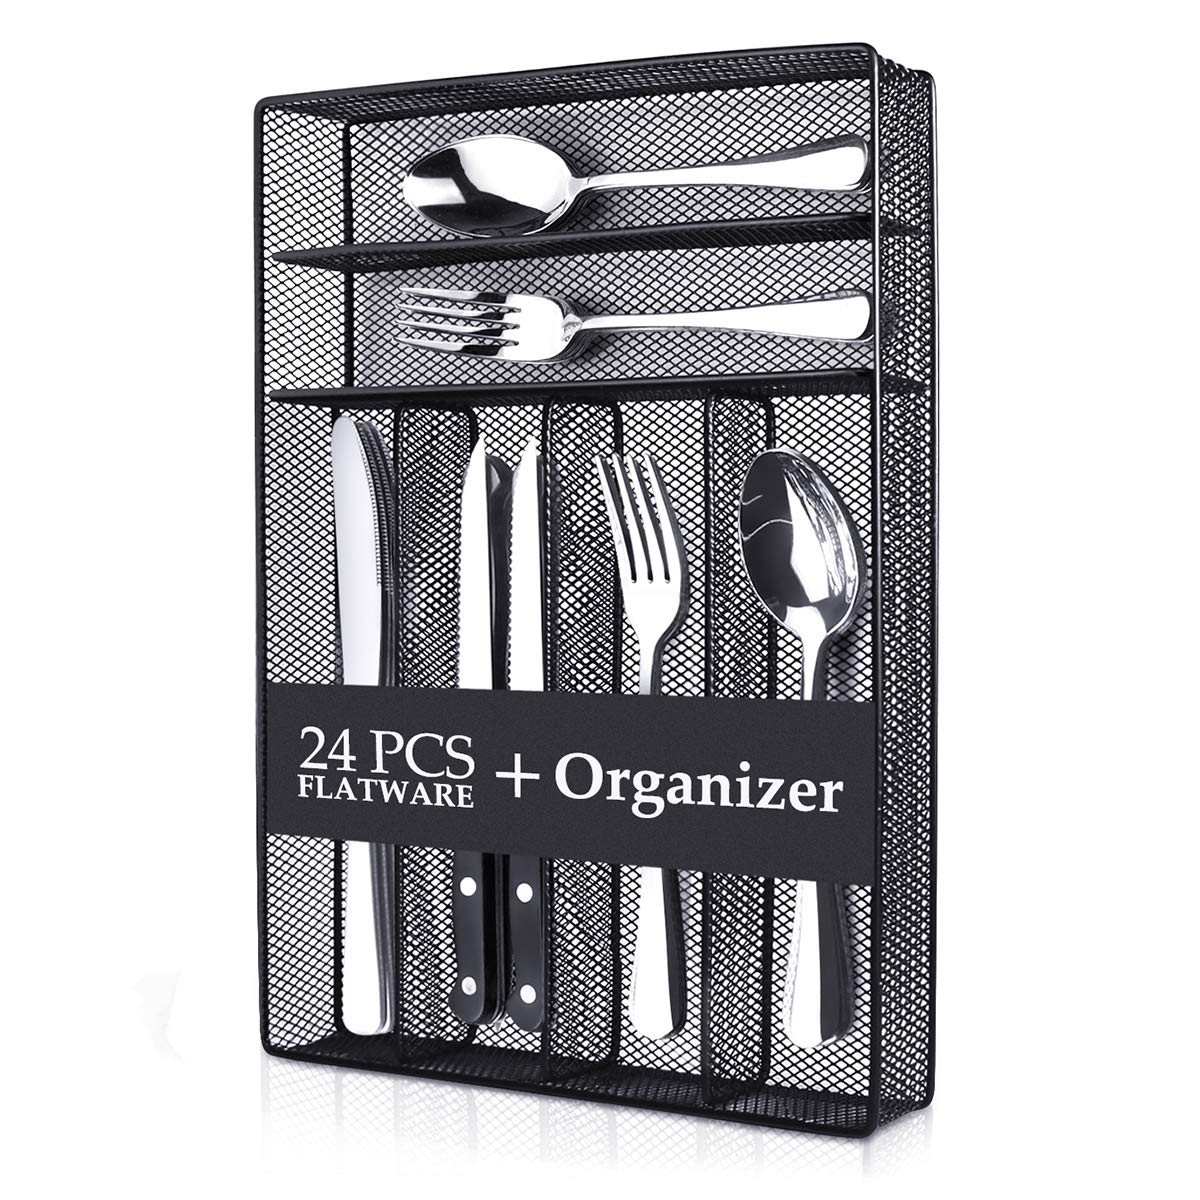 Teivio 20-Piece Silverware Set, Flatware Set Mirror Polished, Dishwasher Safe Service for 4, Include Knife/Fork/Spoon with 4 Steak Knife and Wire Mesh Steel Cutlery Holder Storage Trays